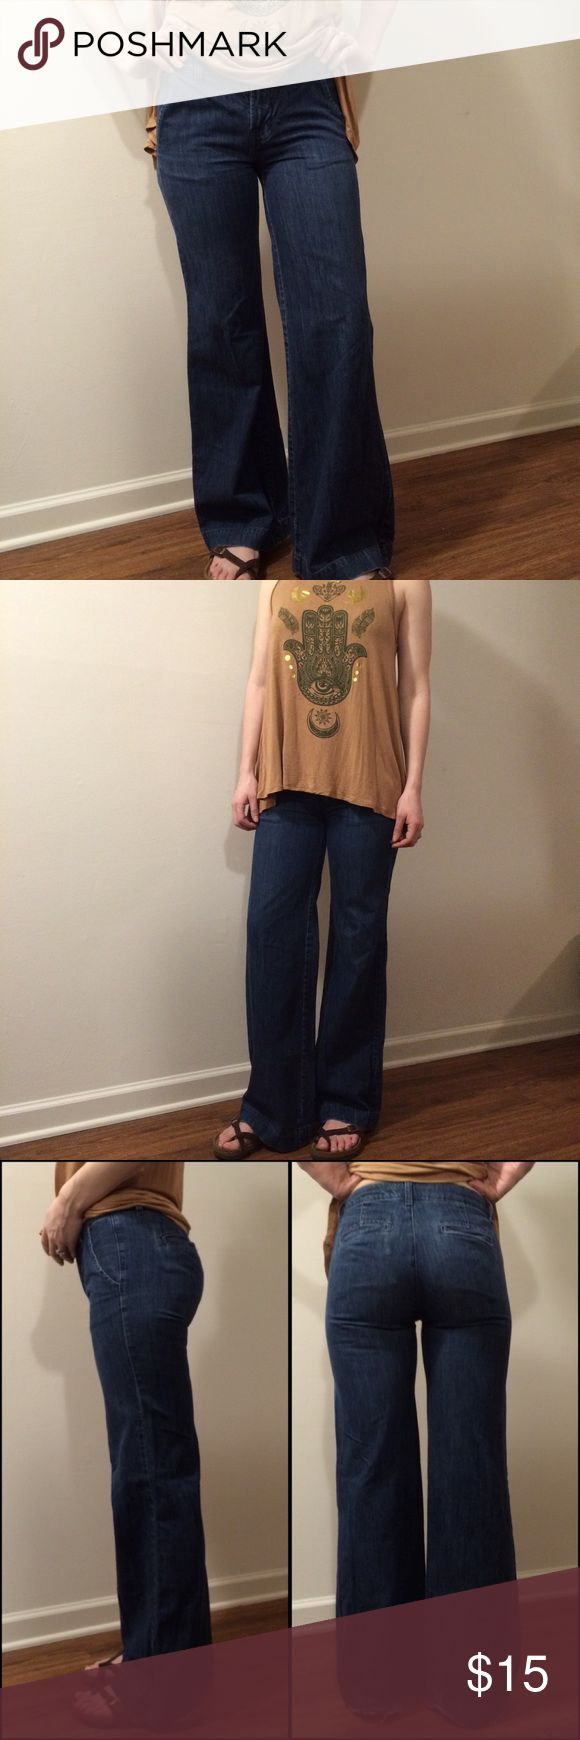 "The Limited Wide Leg Jeans EUC! The only major flaw is the fraying at the leg opening. No stains, rips, or holes! EXTREMELY ADORABLE wide leg, super flared jeans! 💕 Makes your butt look really good! 😉 Very 70s, bohemian vibe. 4 pockets. Inseam: 31"". Length: 39.5"". Rise: 8"". Waist laying flat: 14"". Fits true to size, material does not stretch. Ask questions. OFFERS ARE WELCOME! The Limited Jeans Flare & Wide Leg"